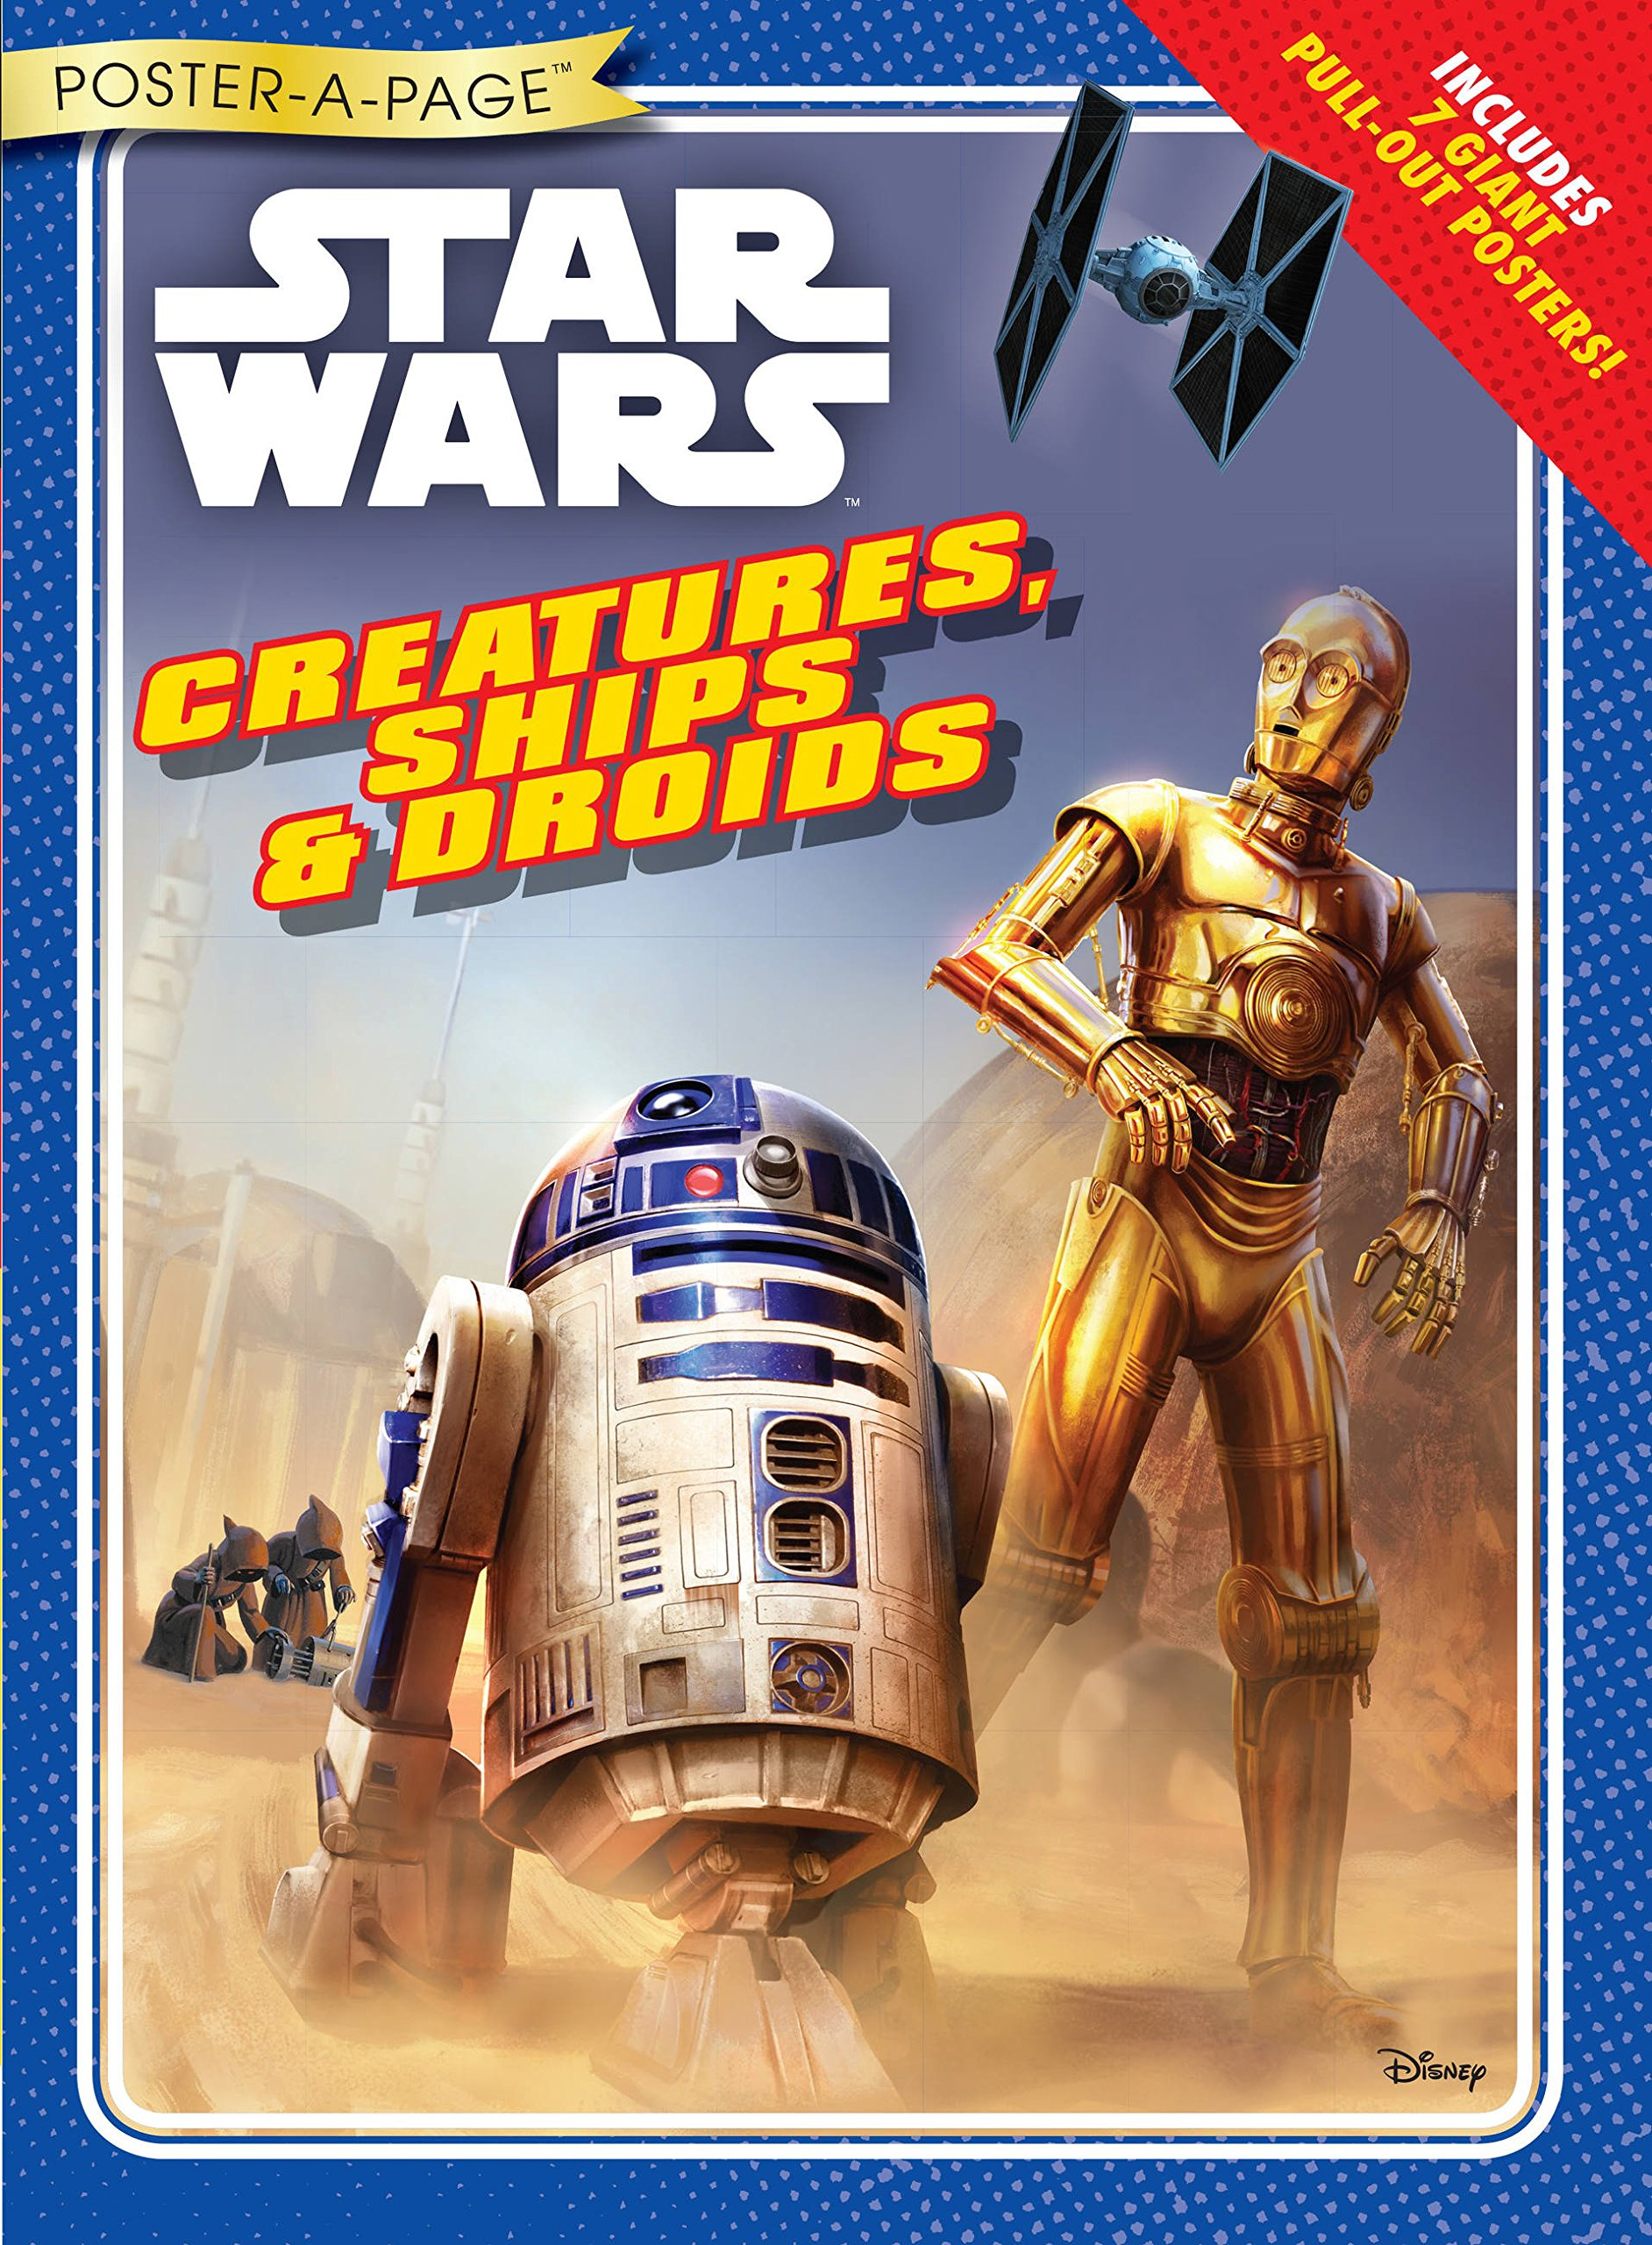 Star Wars Poster-A-Page: Creatures, Ships, & Droids